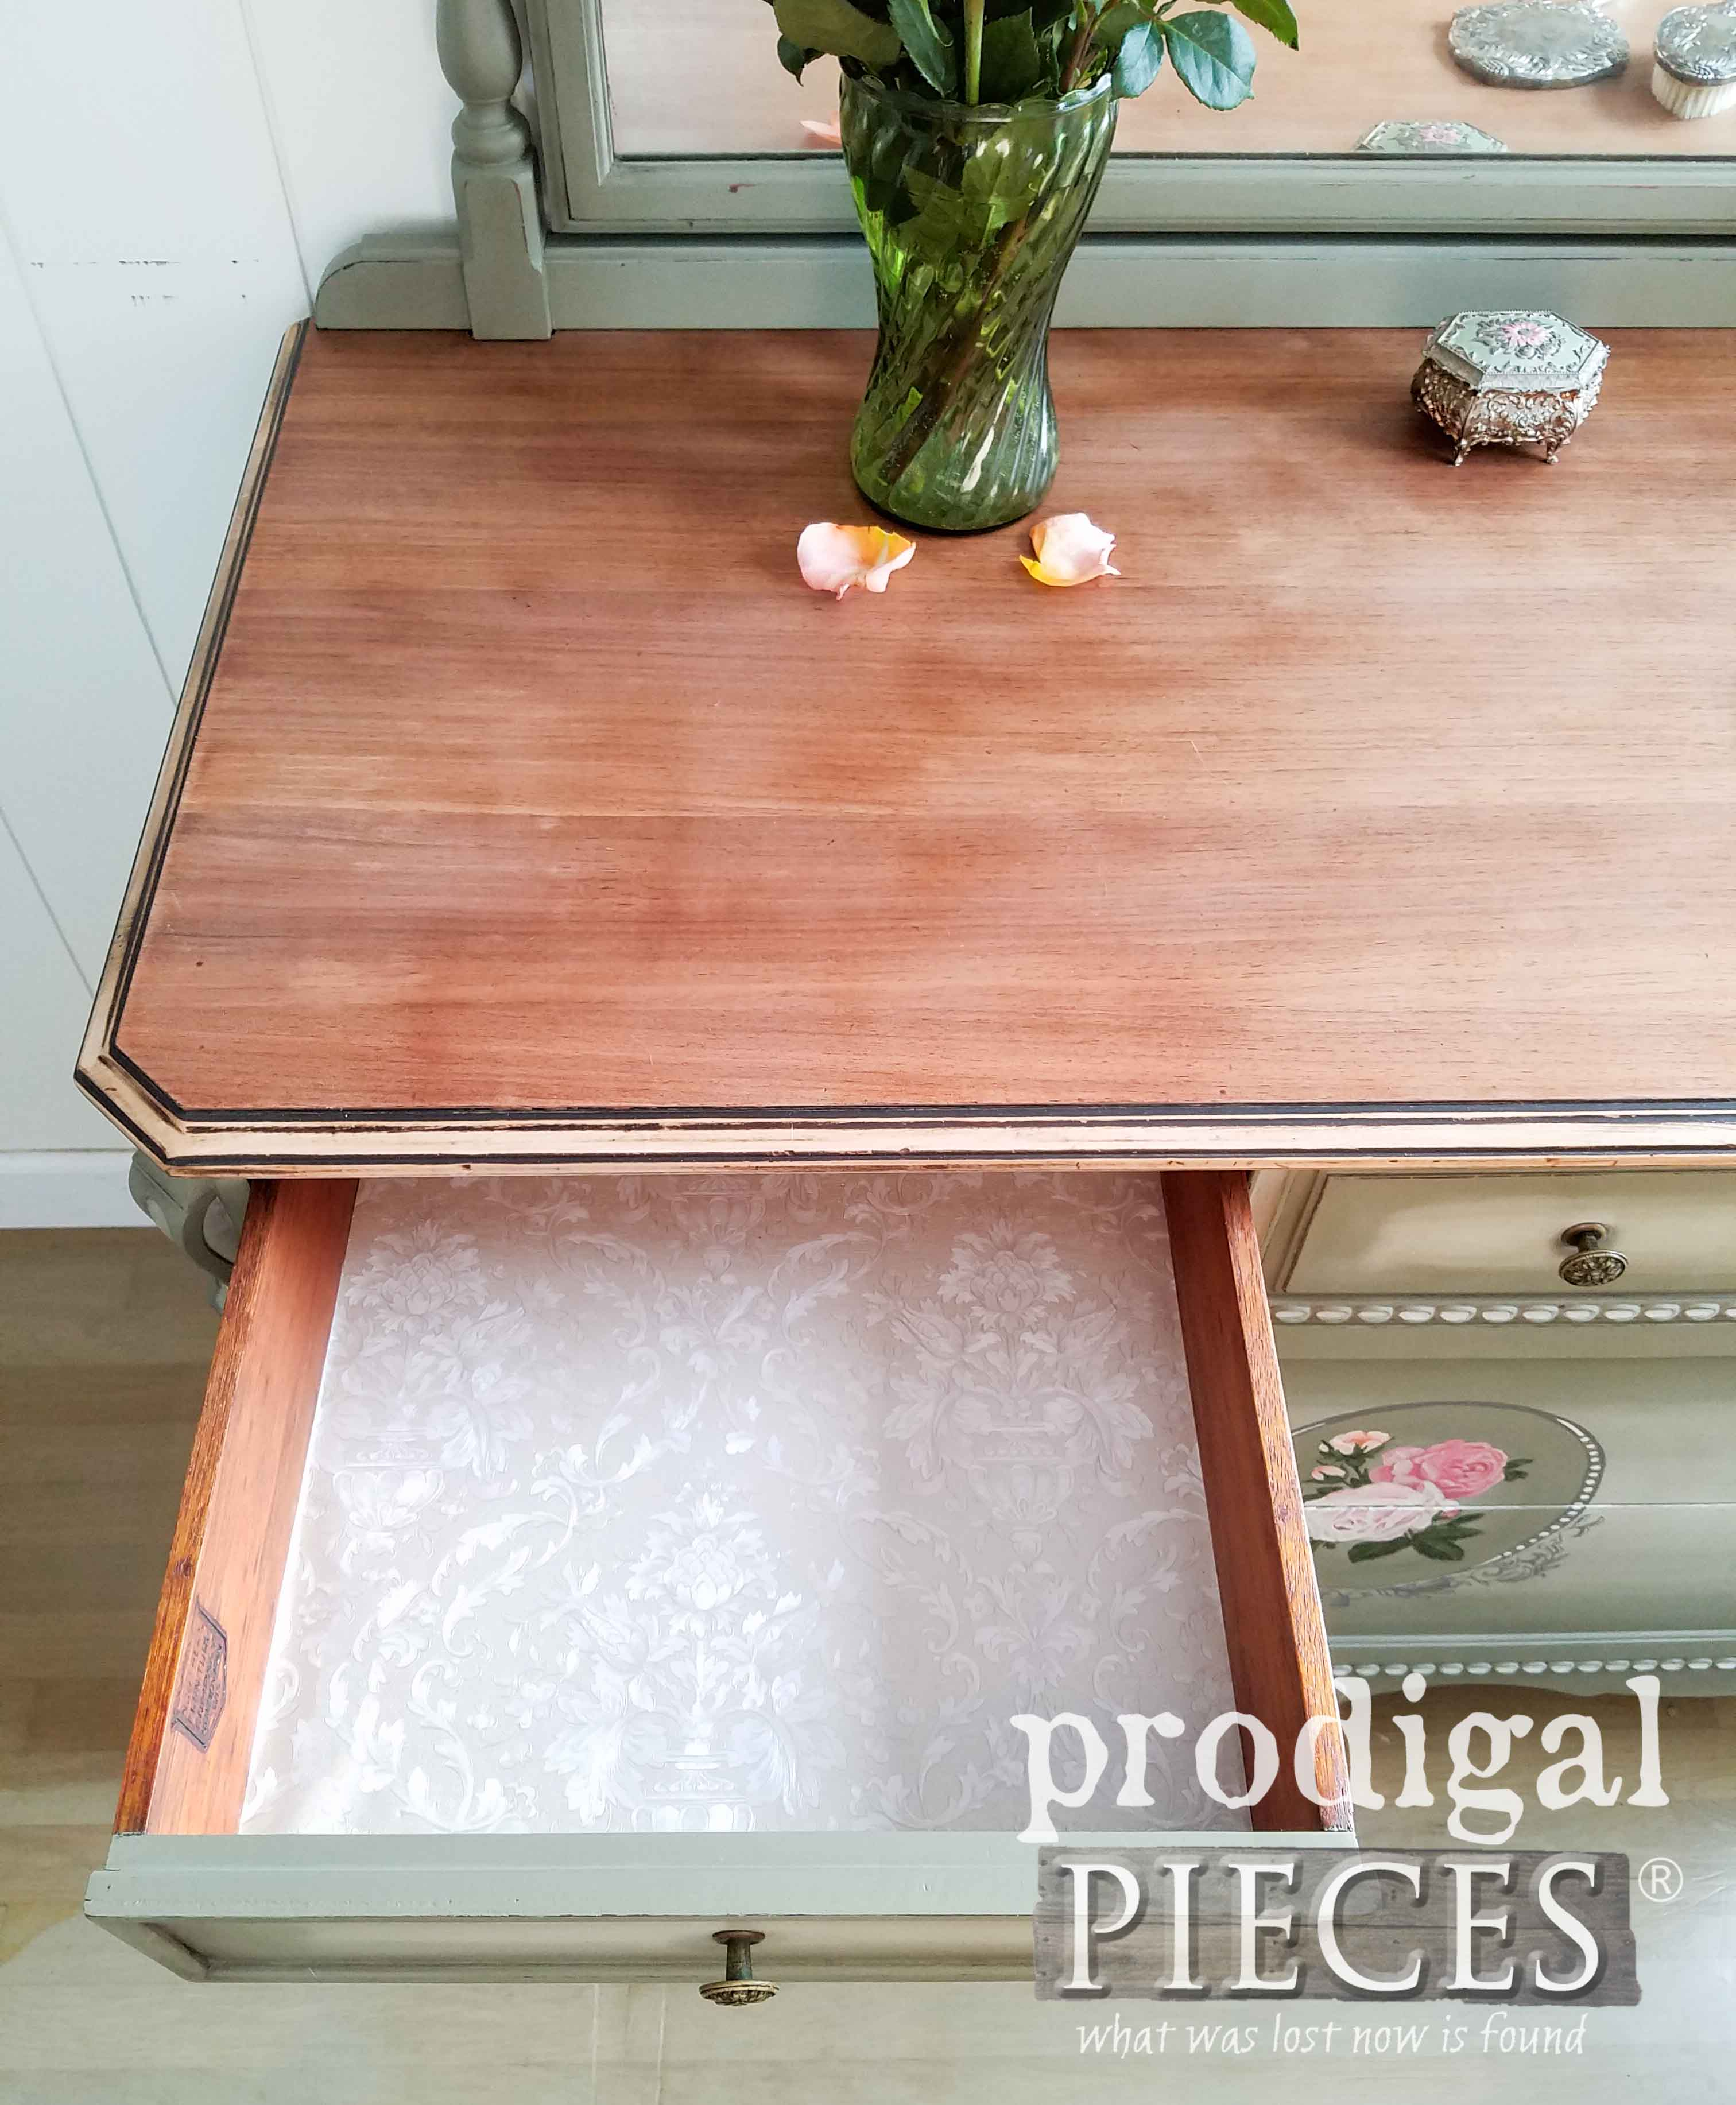 Lining Dresser Drawers with Vintage Embossed Wallpaper by Prodigal Pieces | prodigalpieces.com